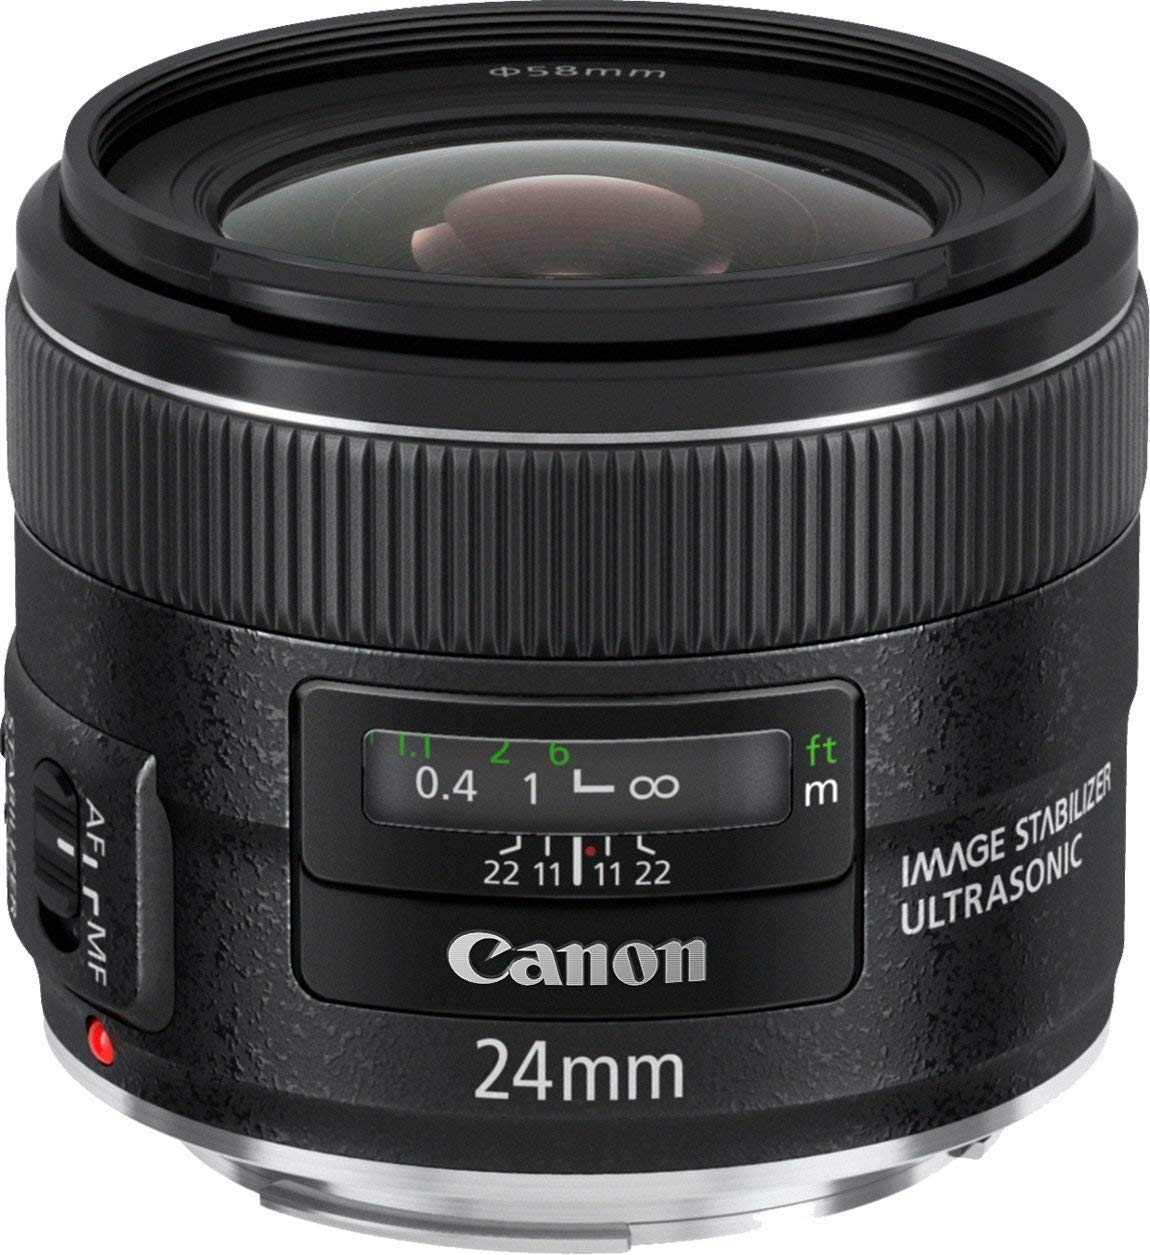 Canon LENS EF24mm 128 IS USM Cameras Accessories get best offers deals free and coupons online at buythevalue.in